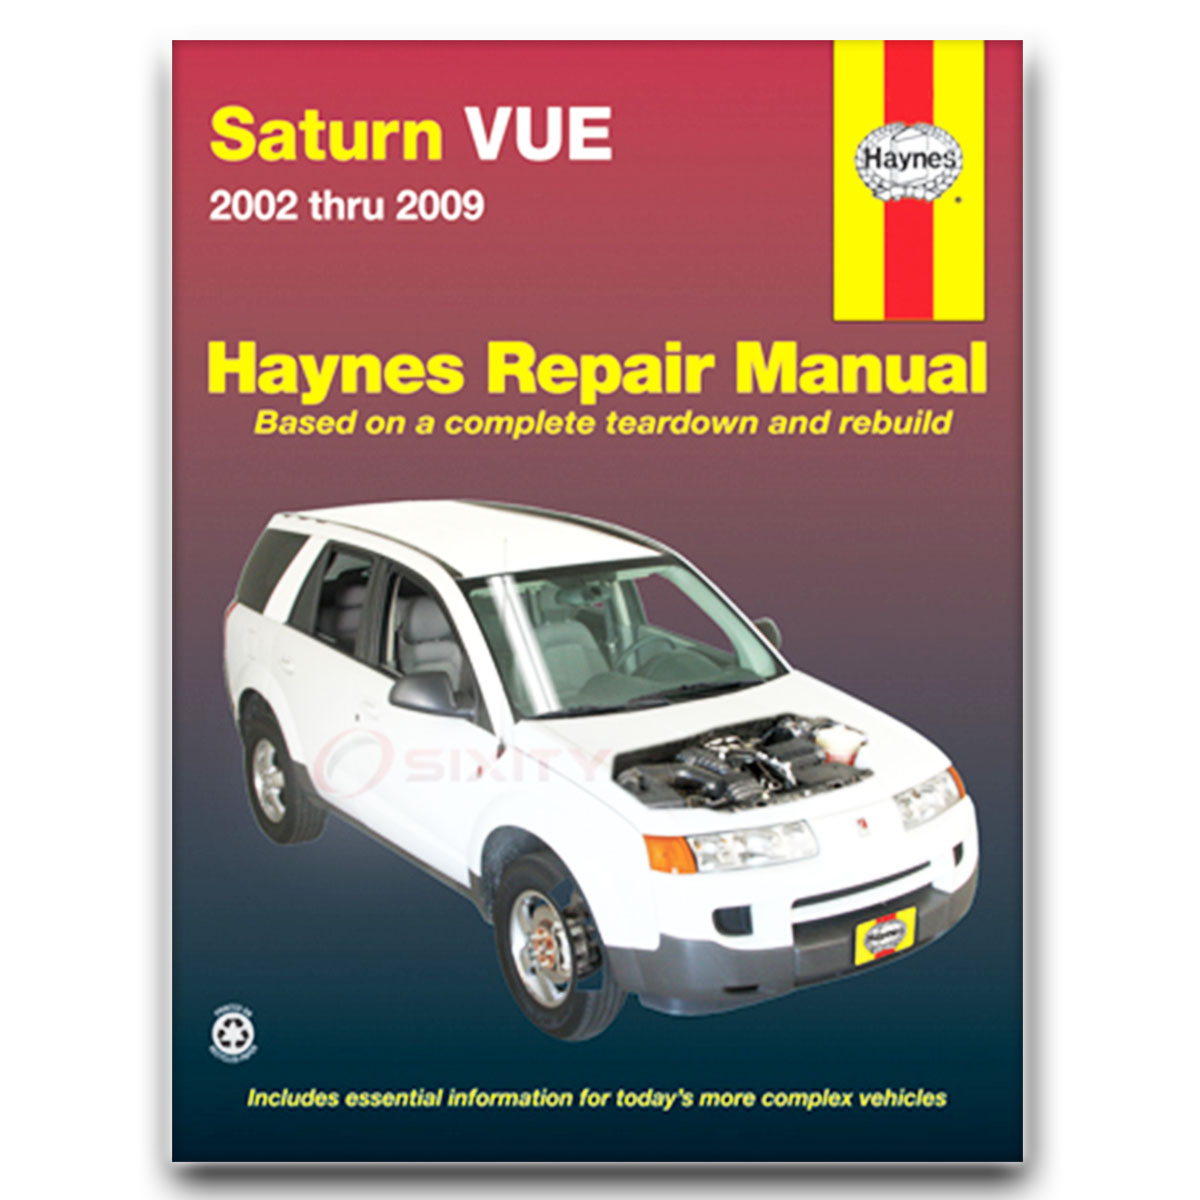 saturn vue haynes repair manual xr base xe green line red shop da ebay rh ebay com 2006 saturn vue service manual 2009 saturn vue service manual